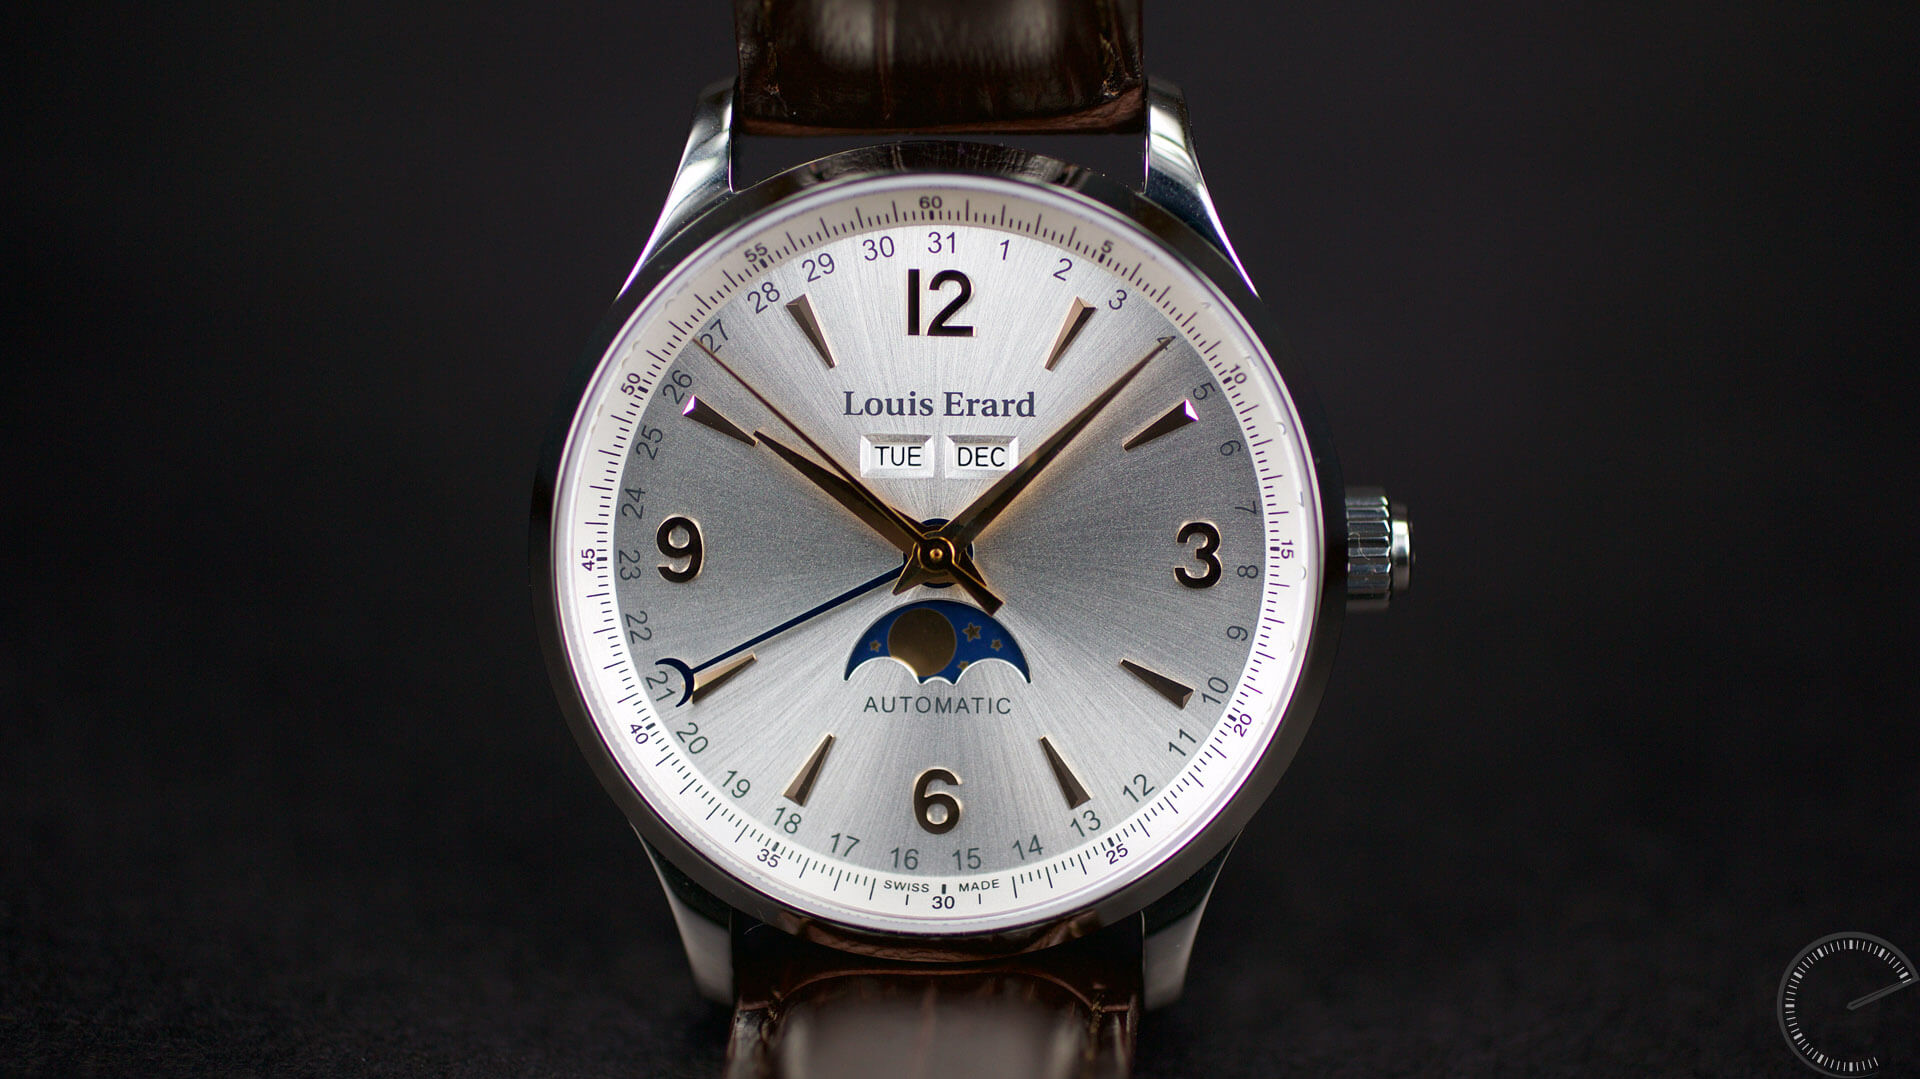 Louis Erard 1931 Moonphase - ESCAPEMENT - watch review magazine by Angus Davies